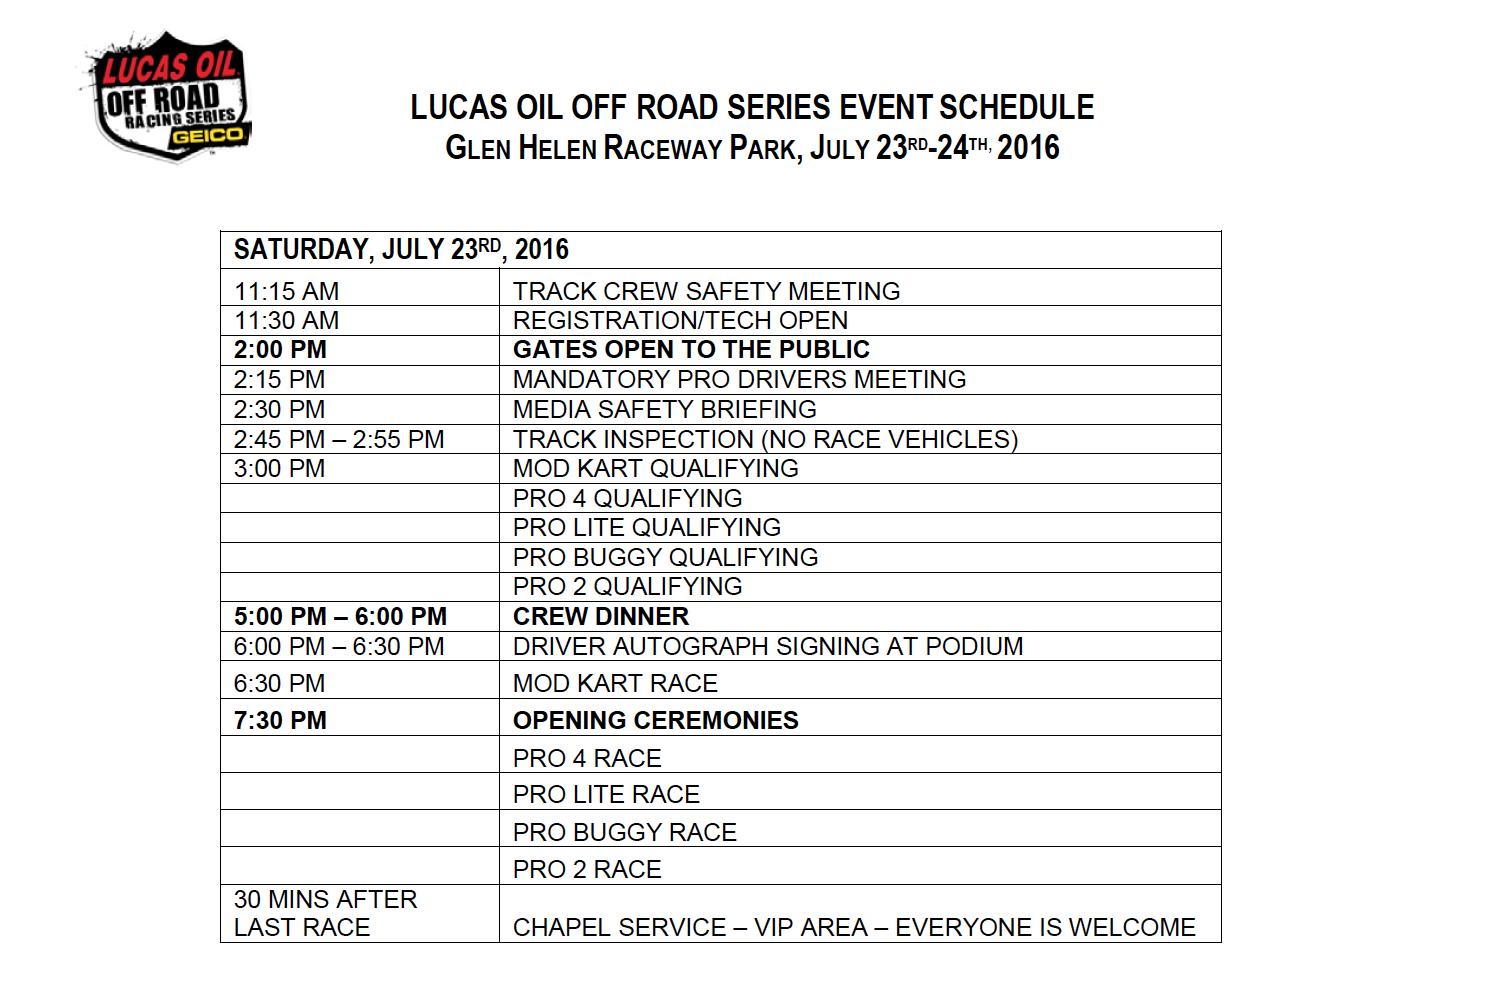 GH.Sched.2.png